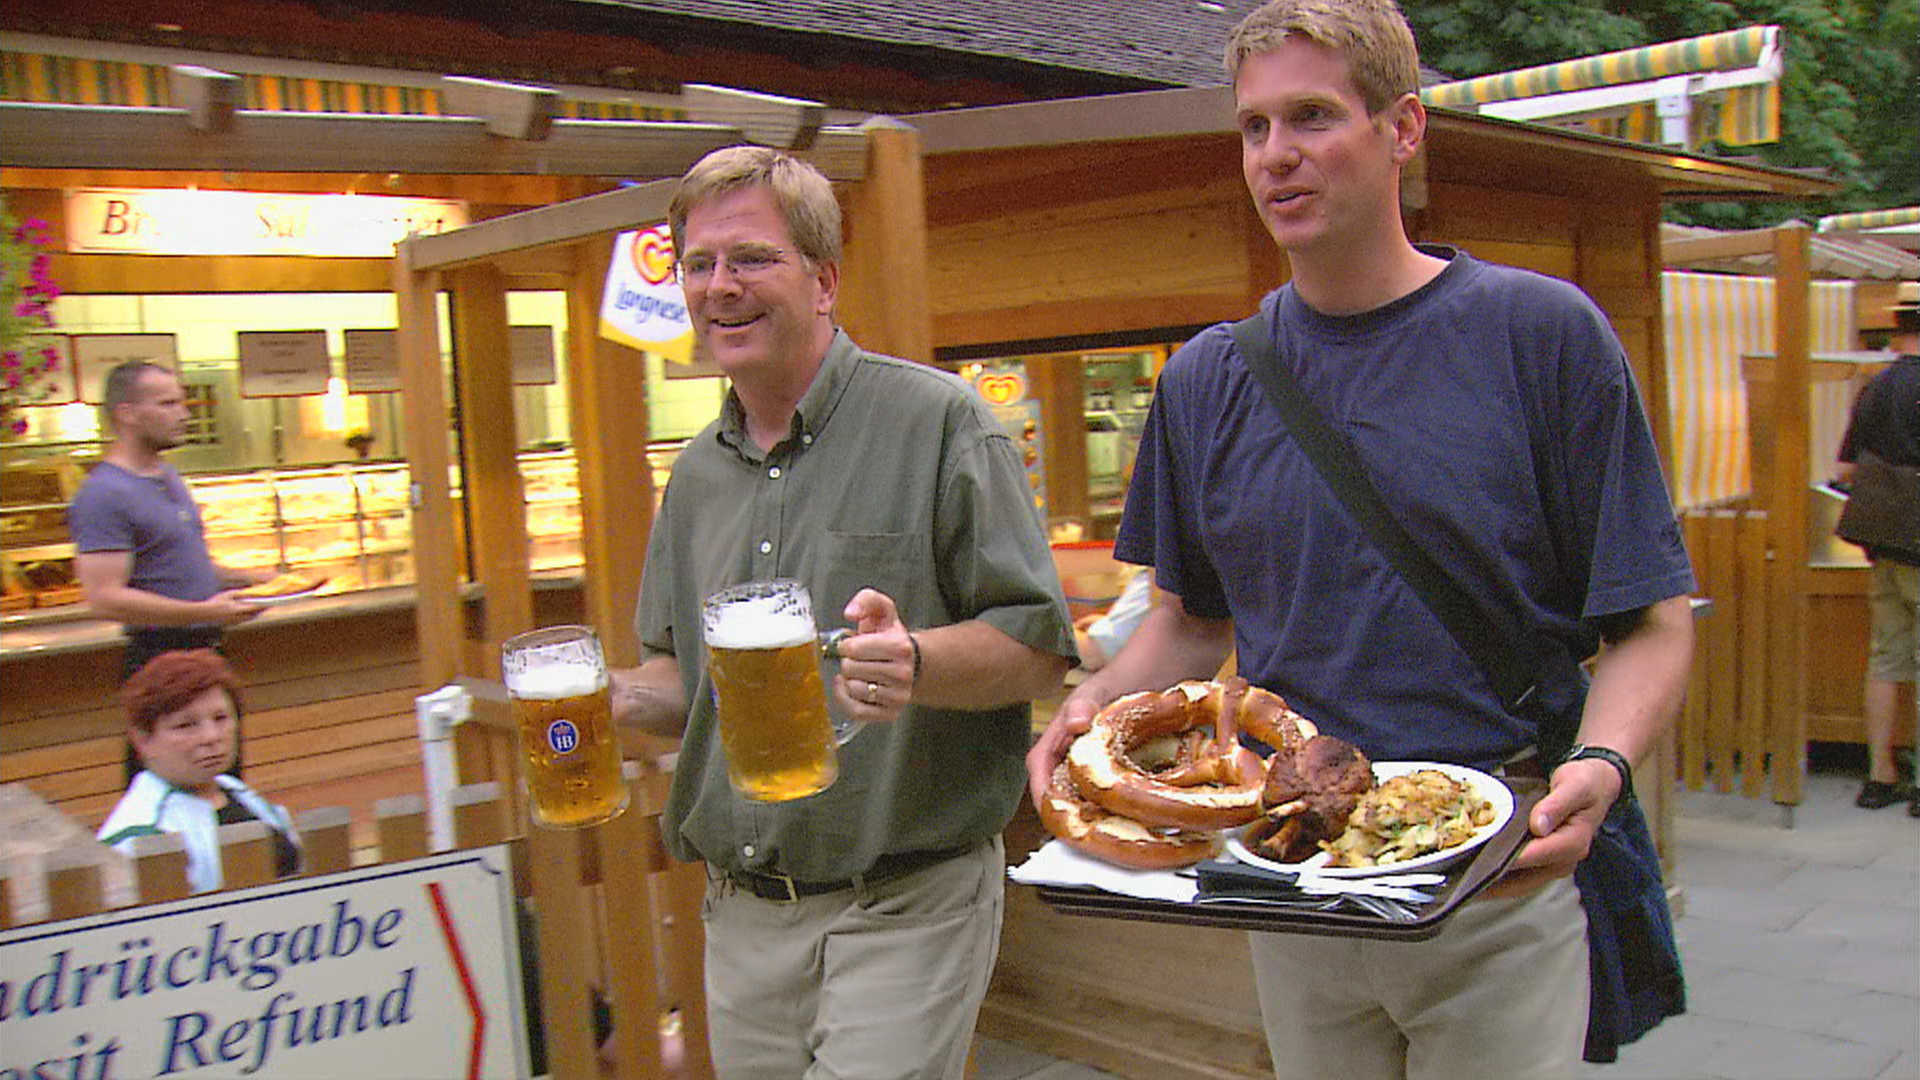 Rick Steves with beer steins and giant pretzels in Bavaria